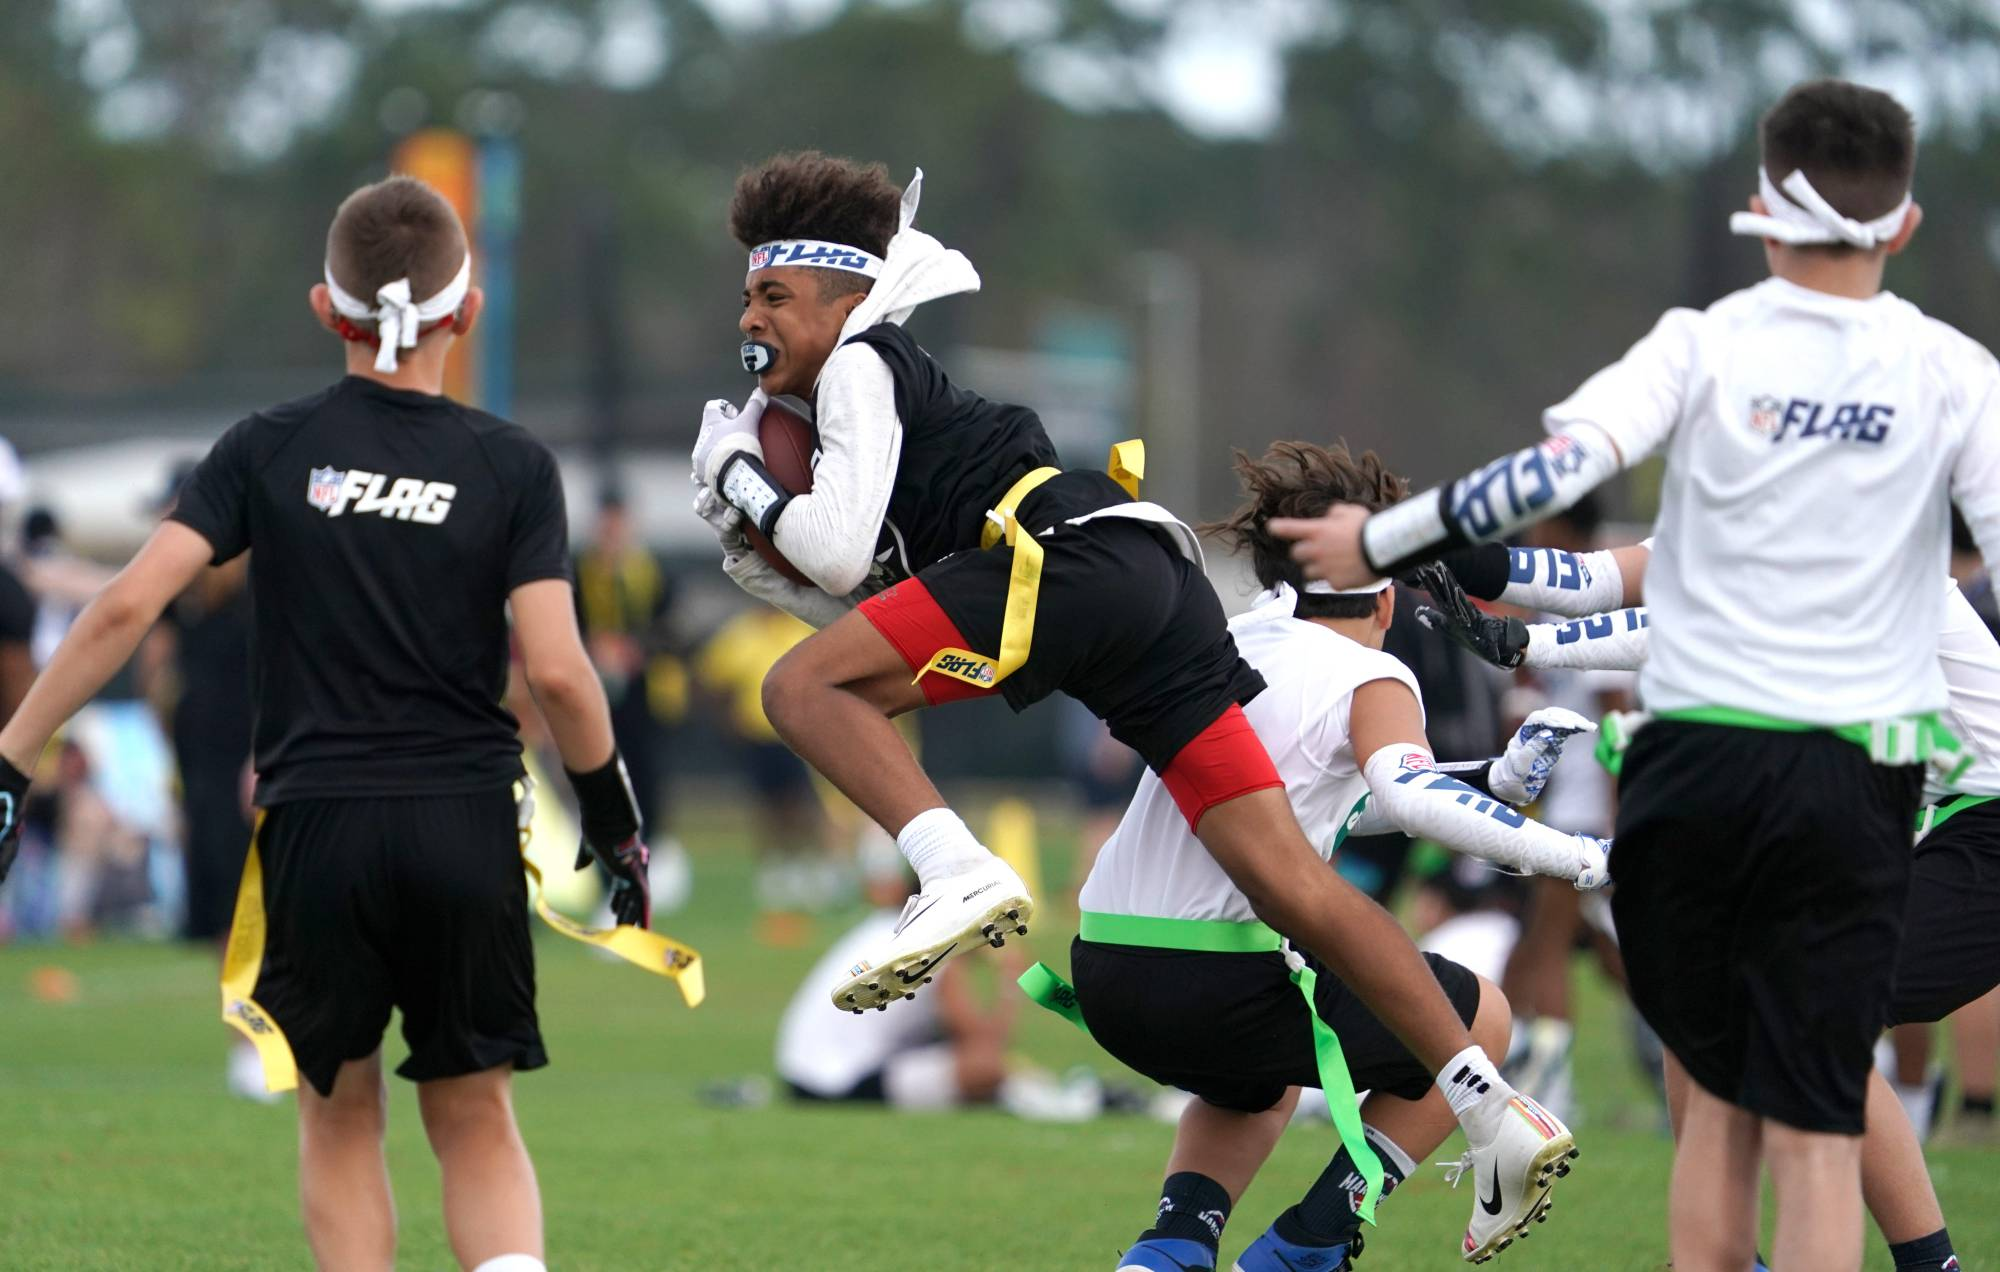 The NFL has shifted its grassroots efforts toward flag football in the last few years as part of its global strategy. | USA TODAY / VIA REUTERS